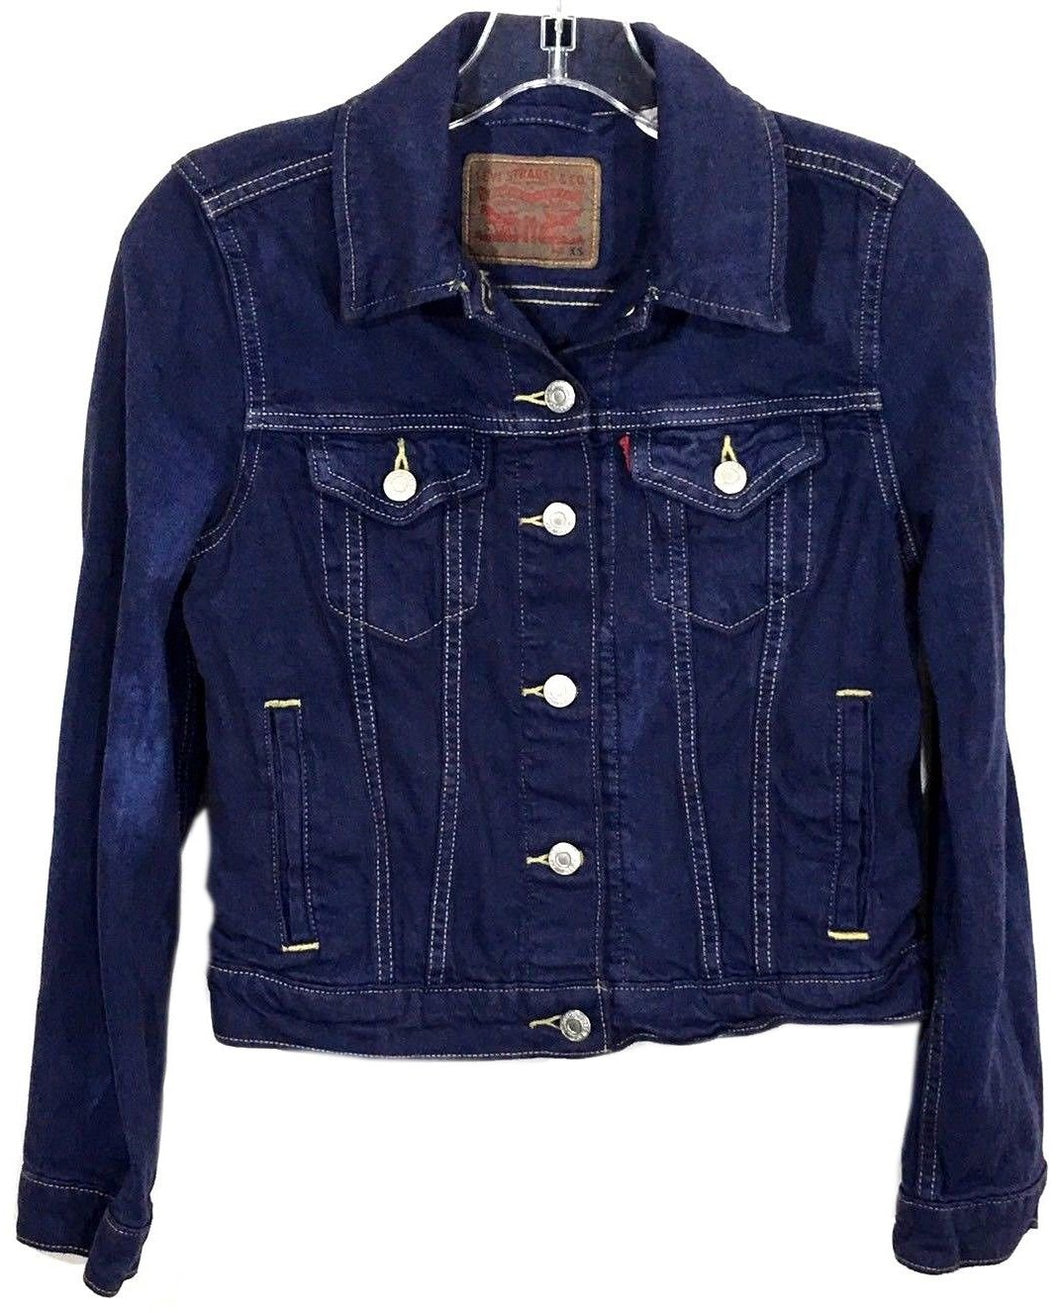 Levi Strauss Button Down 4 Pocket Blue Wash Denim Jean Jacket Women's Size XS - Preowned - FunkyCrap Boutique